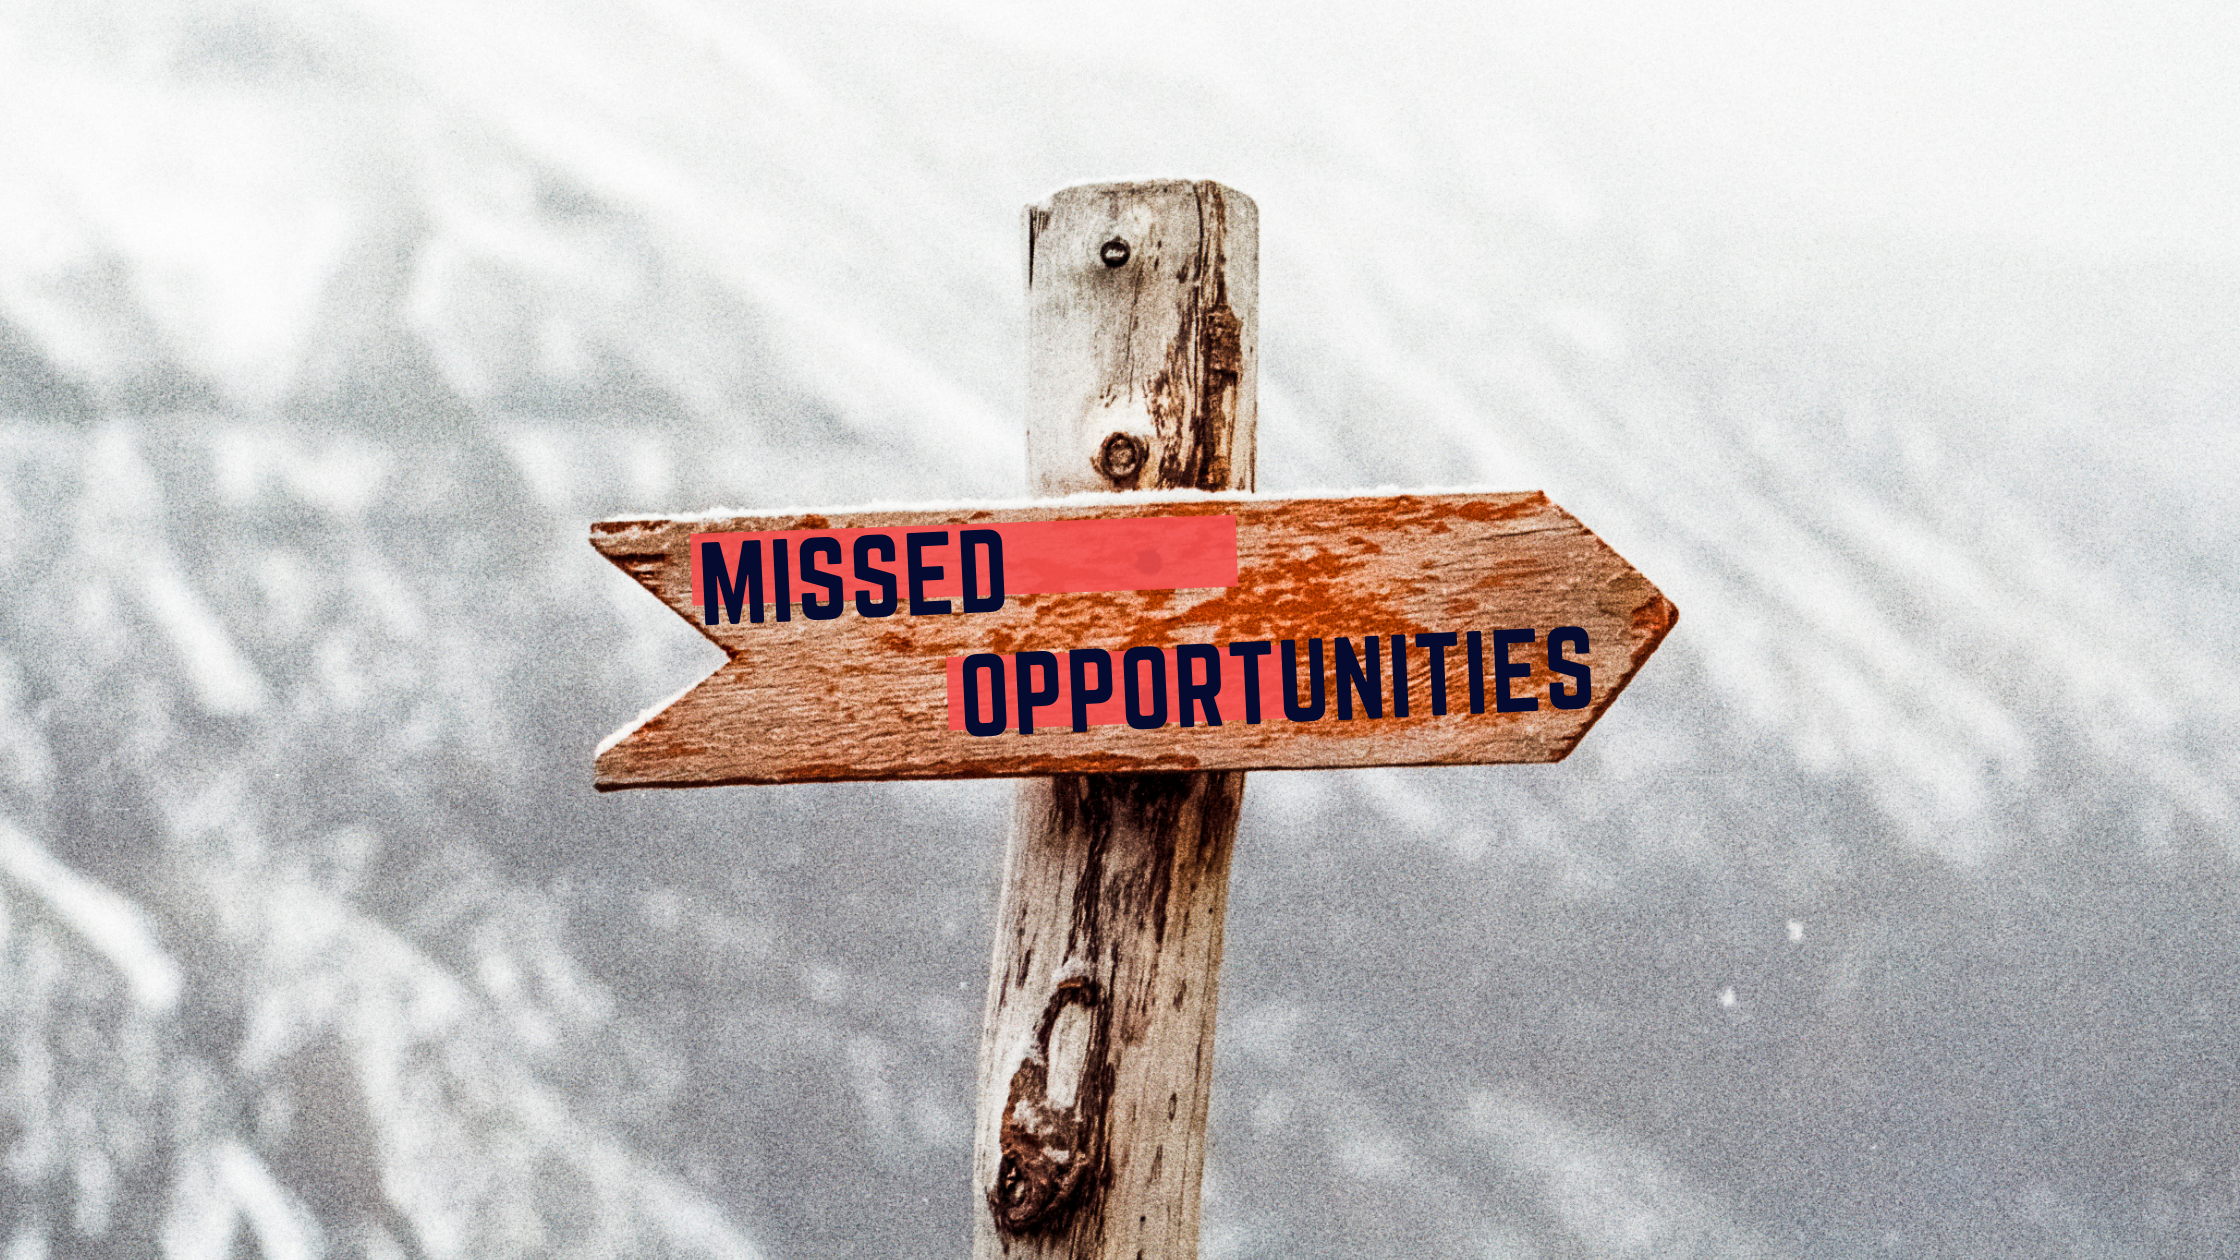 Missed Opportunities in business